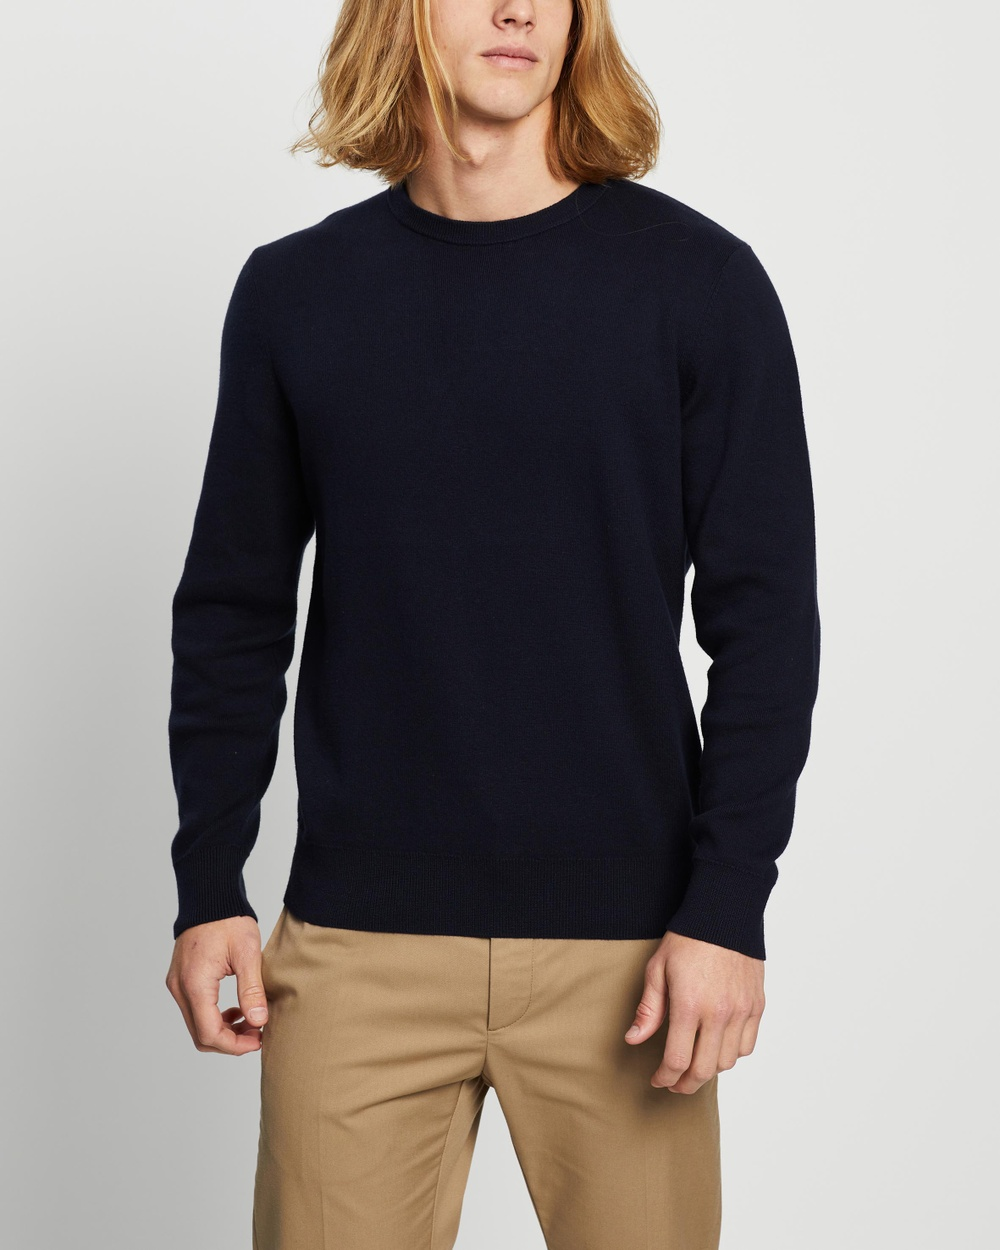 AERE Organic Cotton & Cashmere Knit Jumpers Cardigans Navy